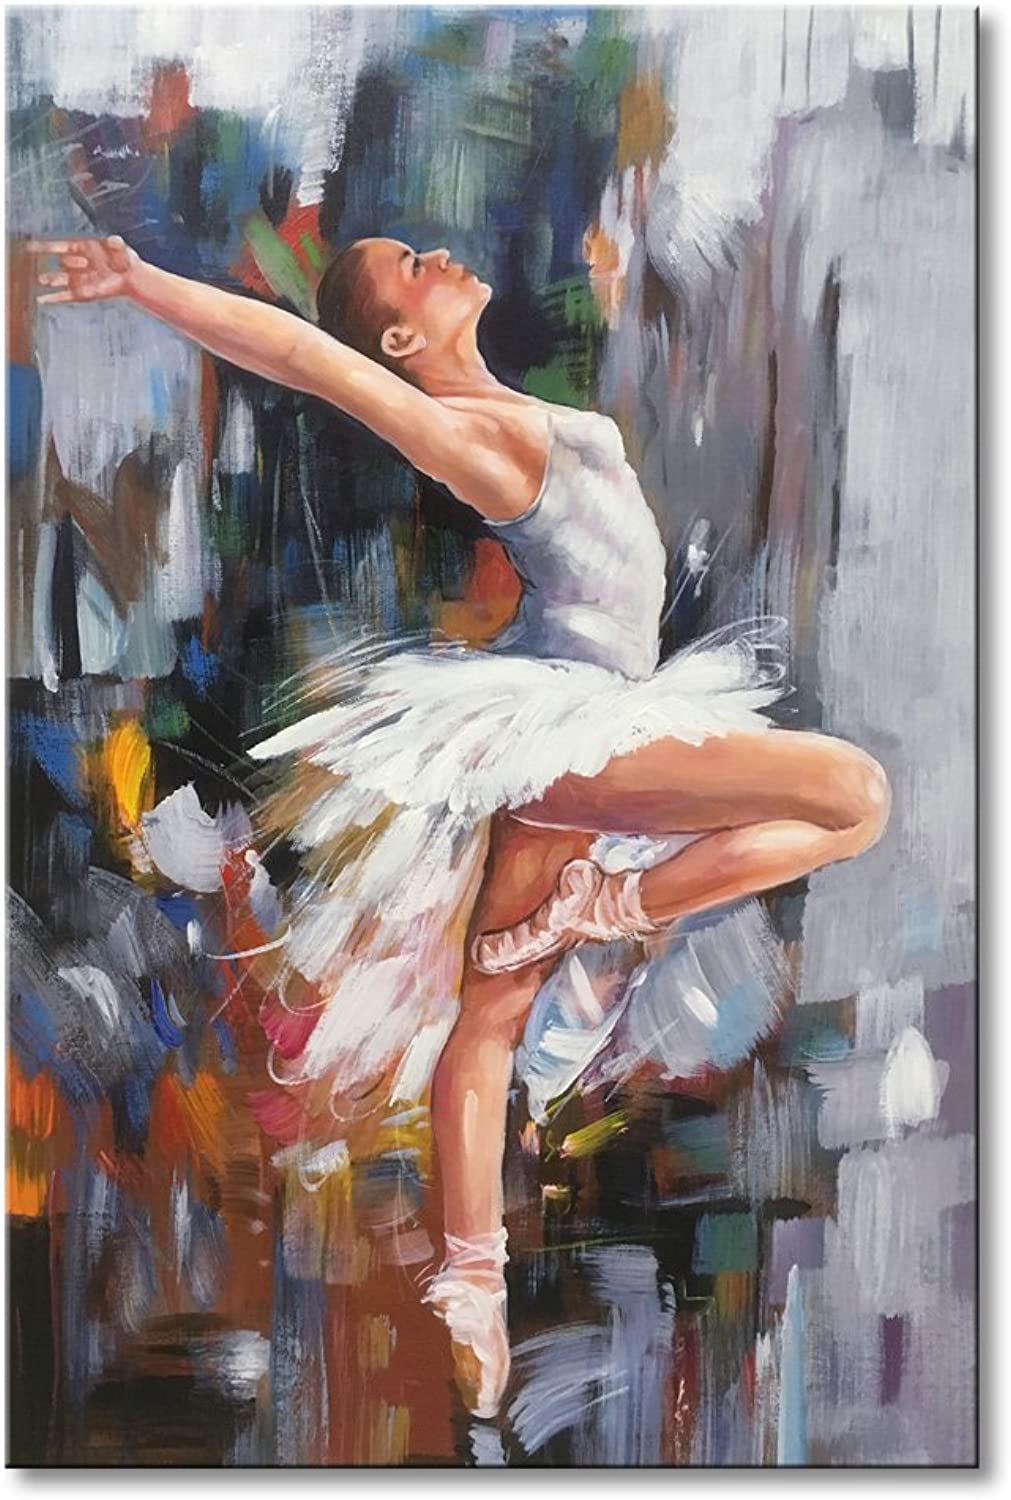 EVERFUN ART Ballet Dancer Modern Artwork Hand Painted Abstract Oil Paintings on Canvas Wall Art Girl Dancing Contemporary Framed Ready to Hang for Home Decoration